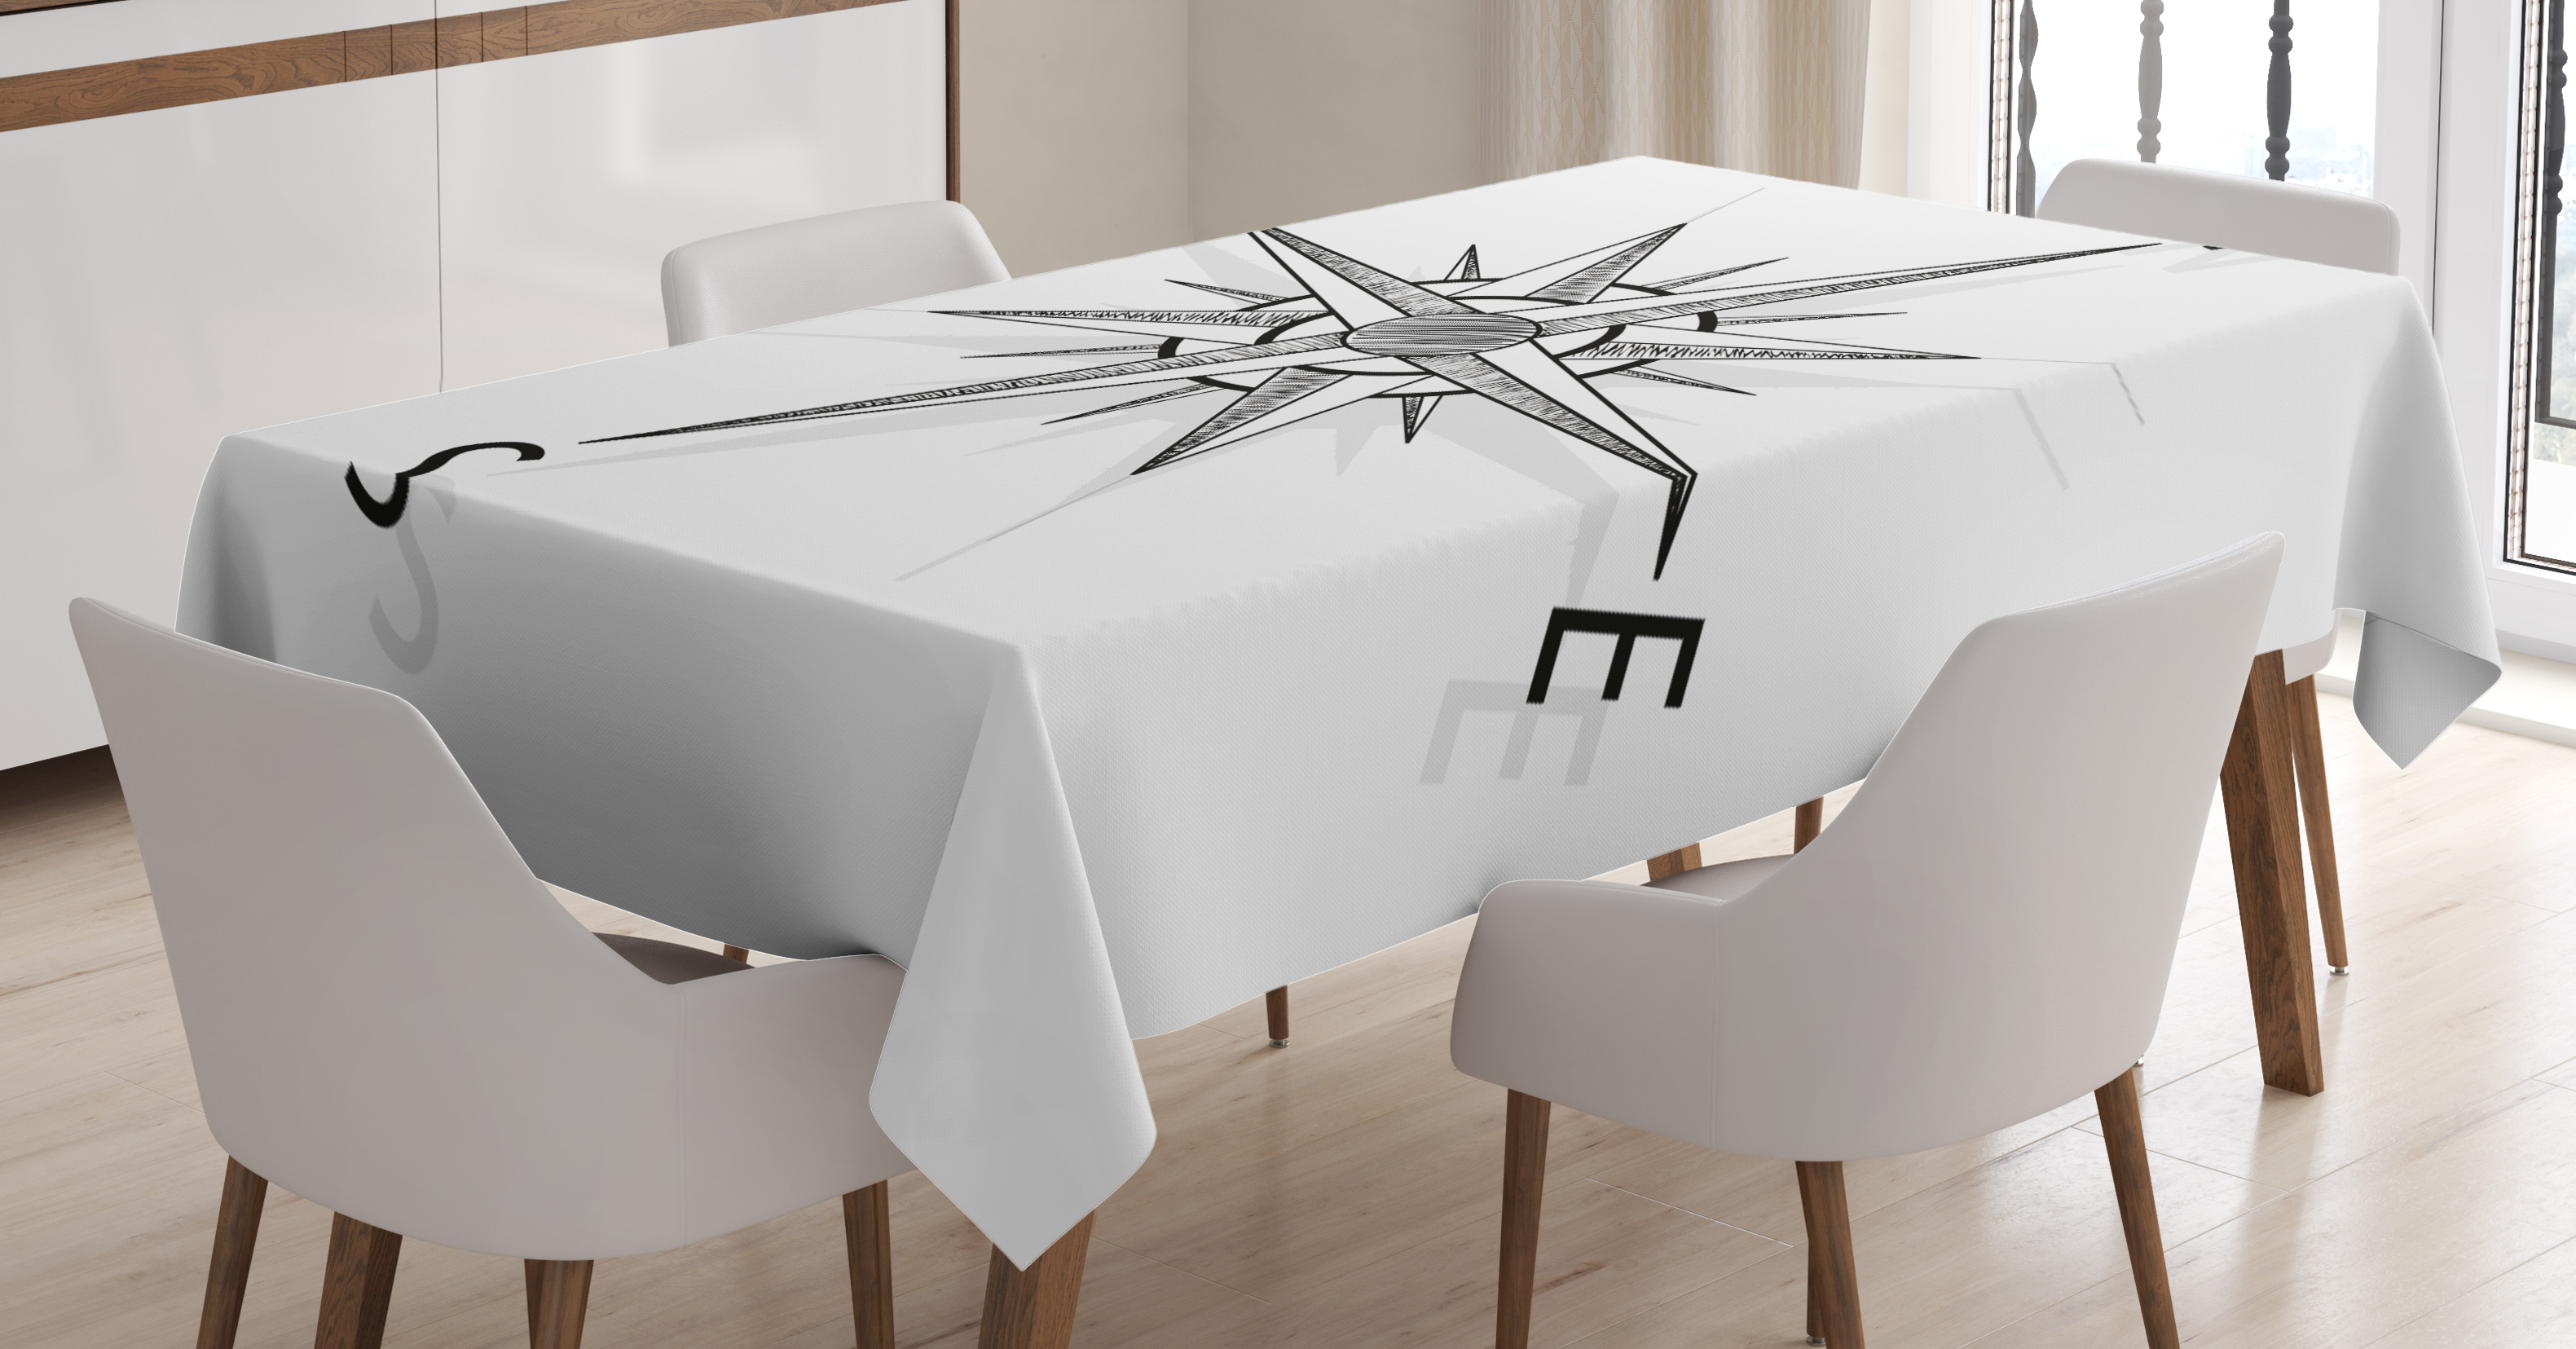 Compass Tablecloth, Black And White Compass For Finding Your Way On The Sea  Marine Life